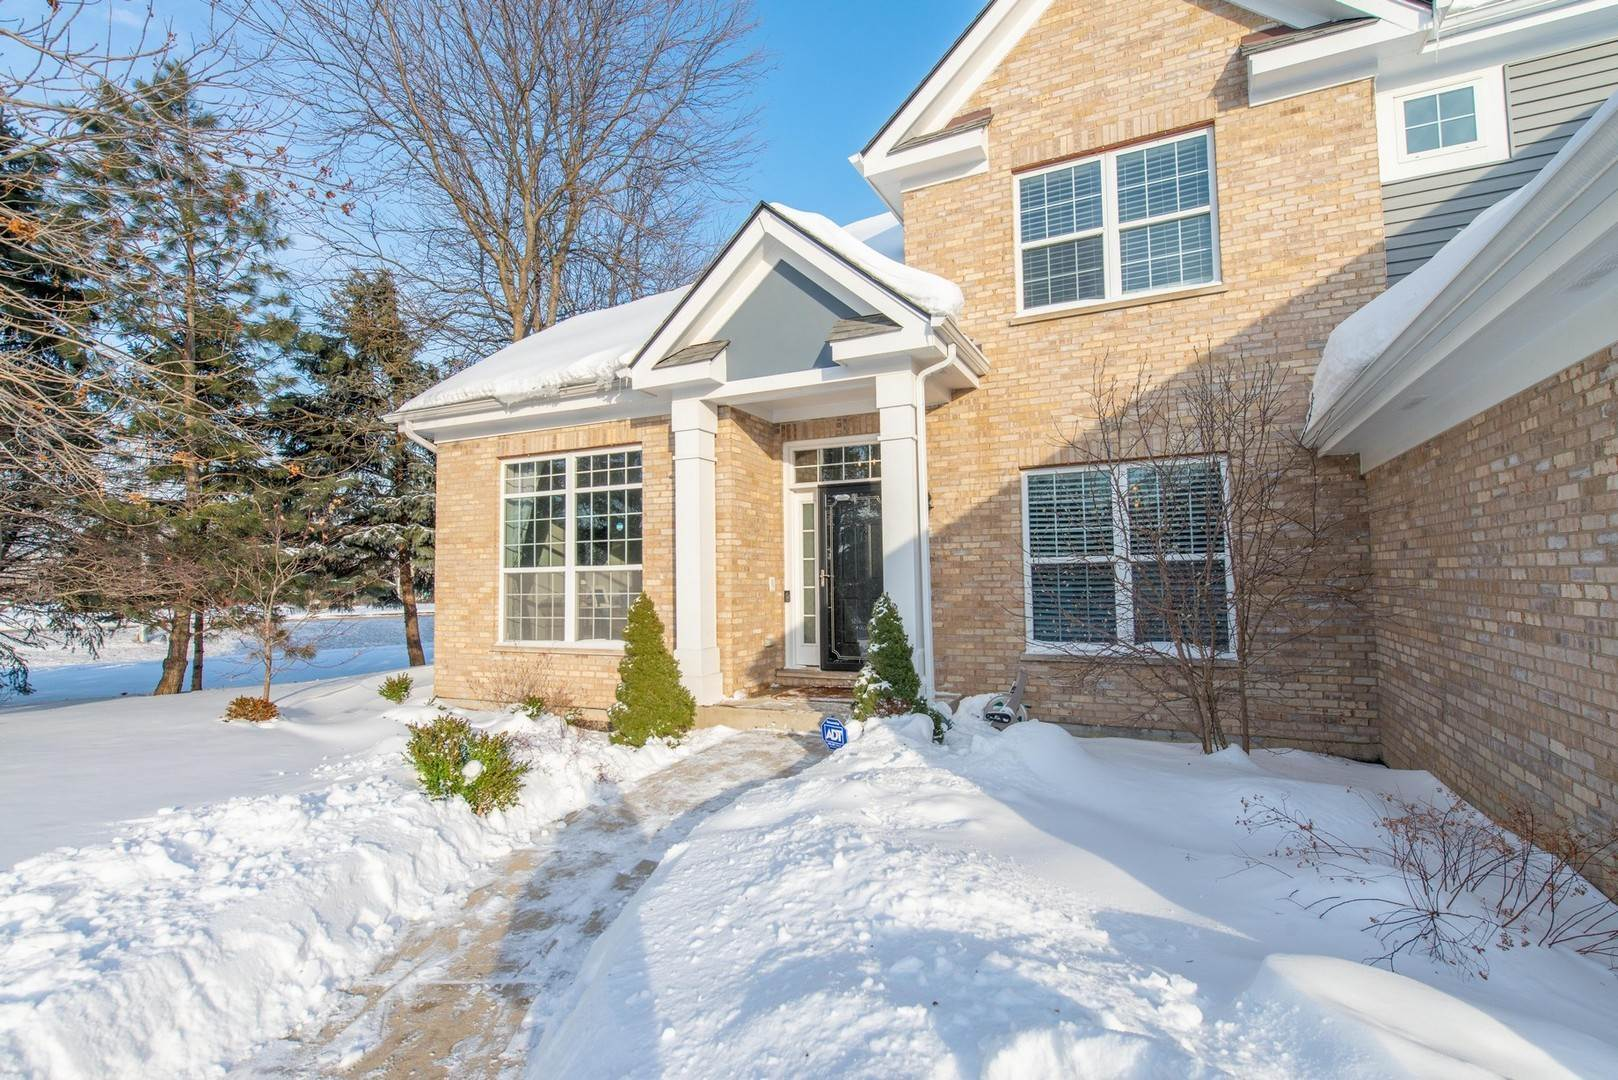 Single Family Homes for Sale at 873 Morningside Drive Schaumburg, Illinois 60173 United States